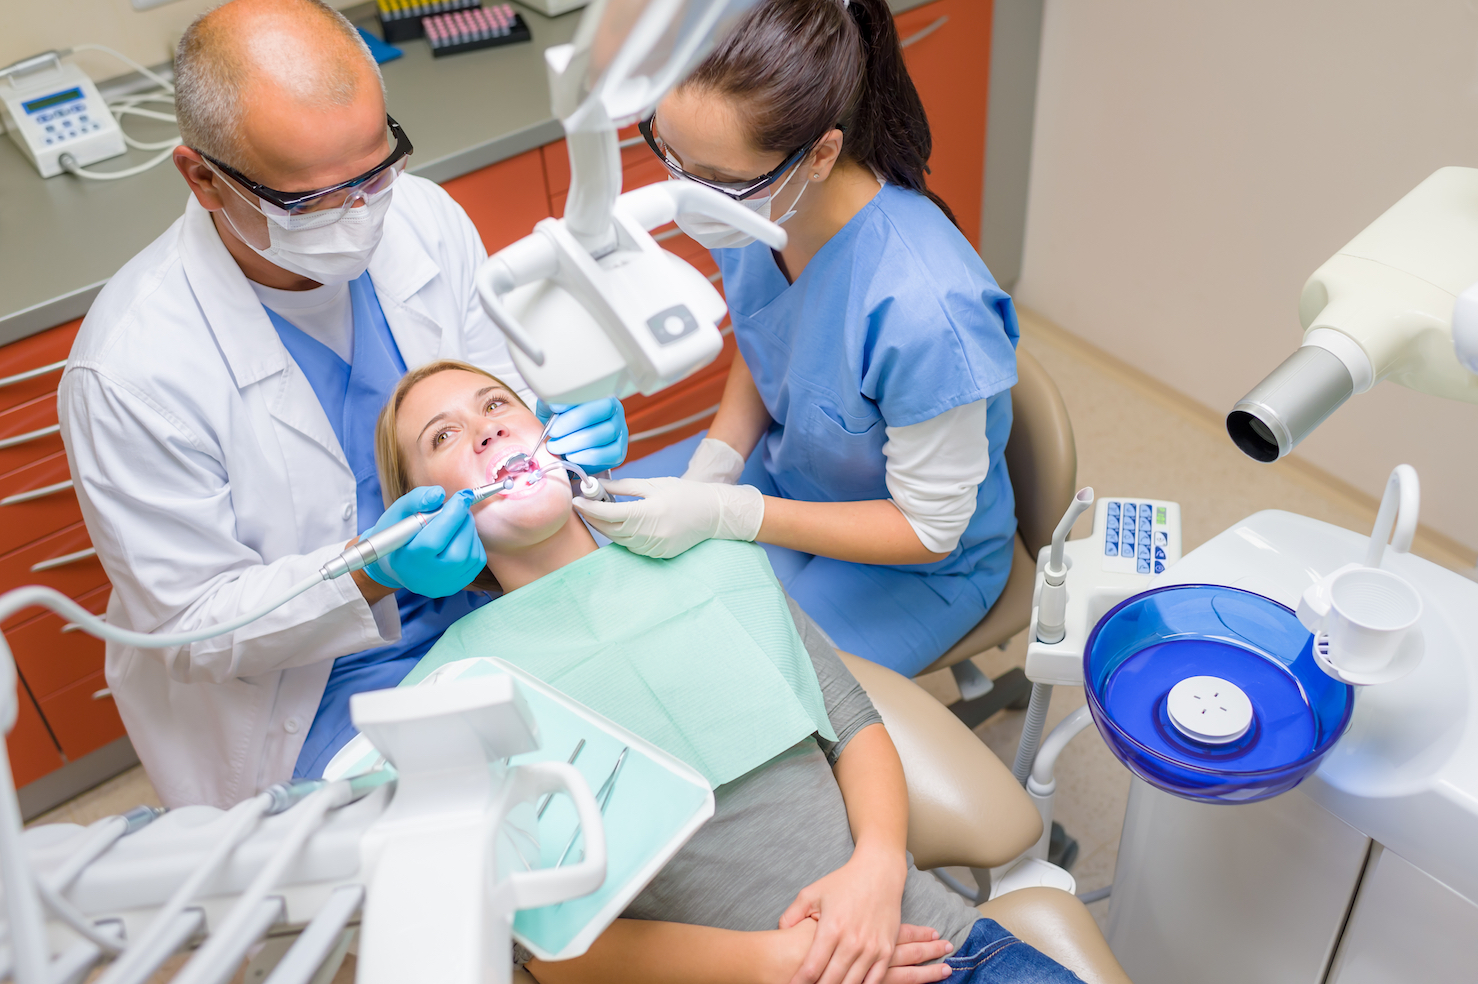 Dental procedure dentist care female patient